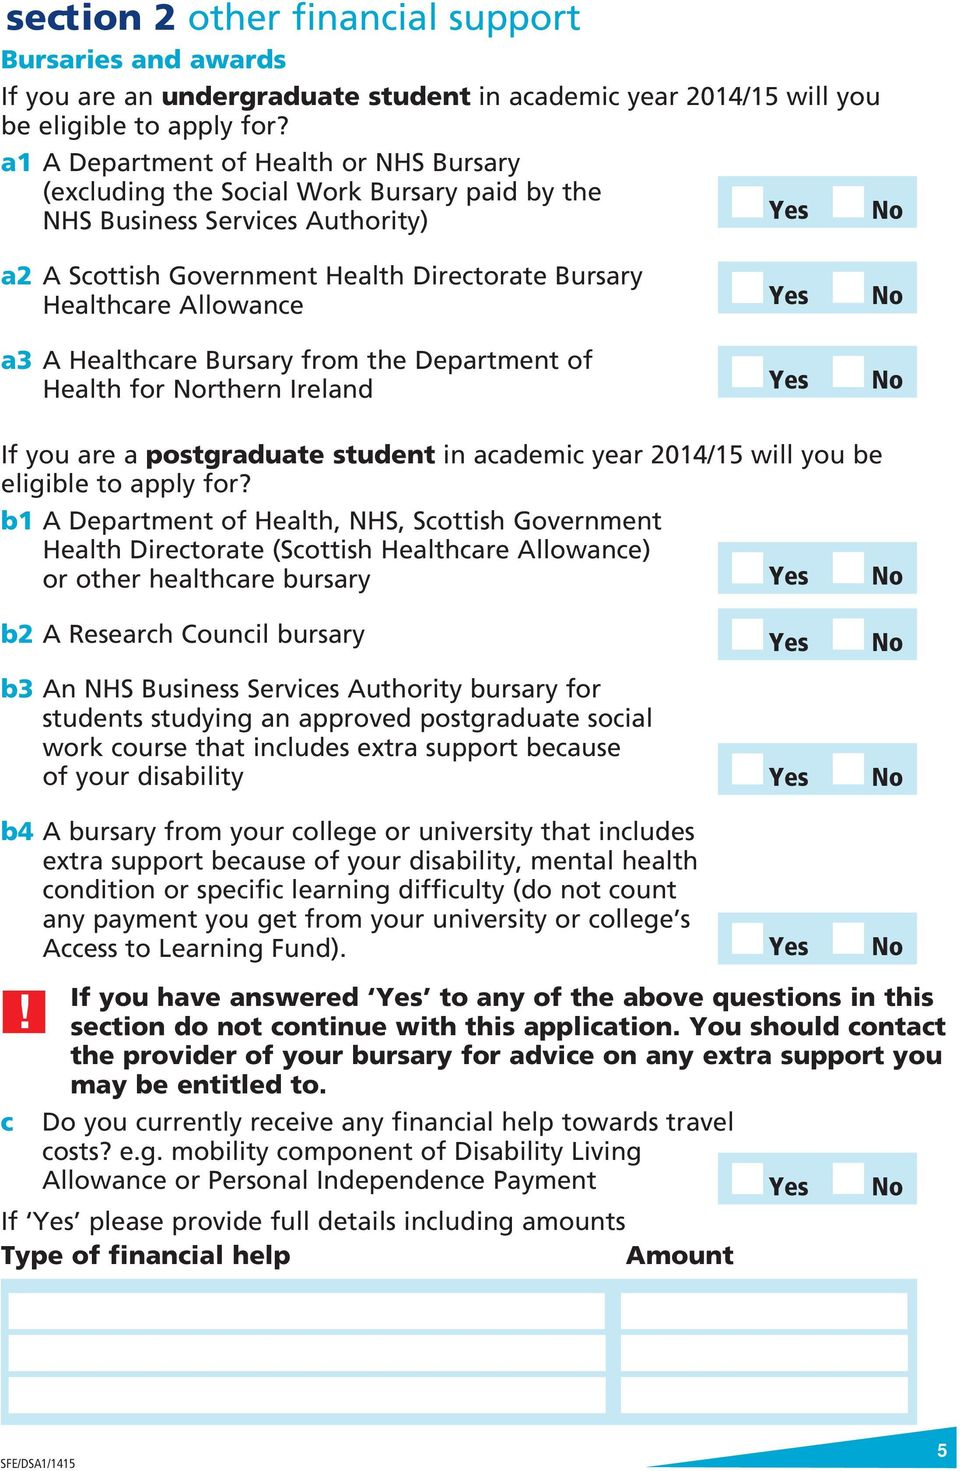 Allowance a3 A Healthcare Bursary from the Department of Health for rthern Ireland If you are a postgraduate student in academic year 2014/15 will you be eligible to apply for?